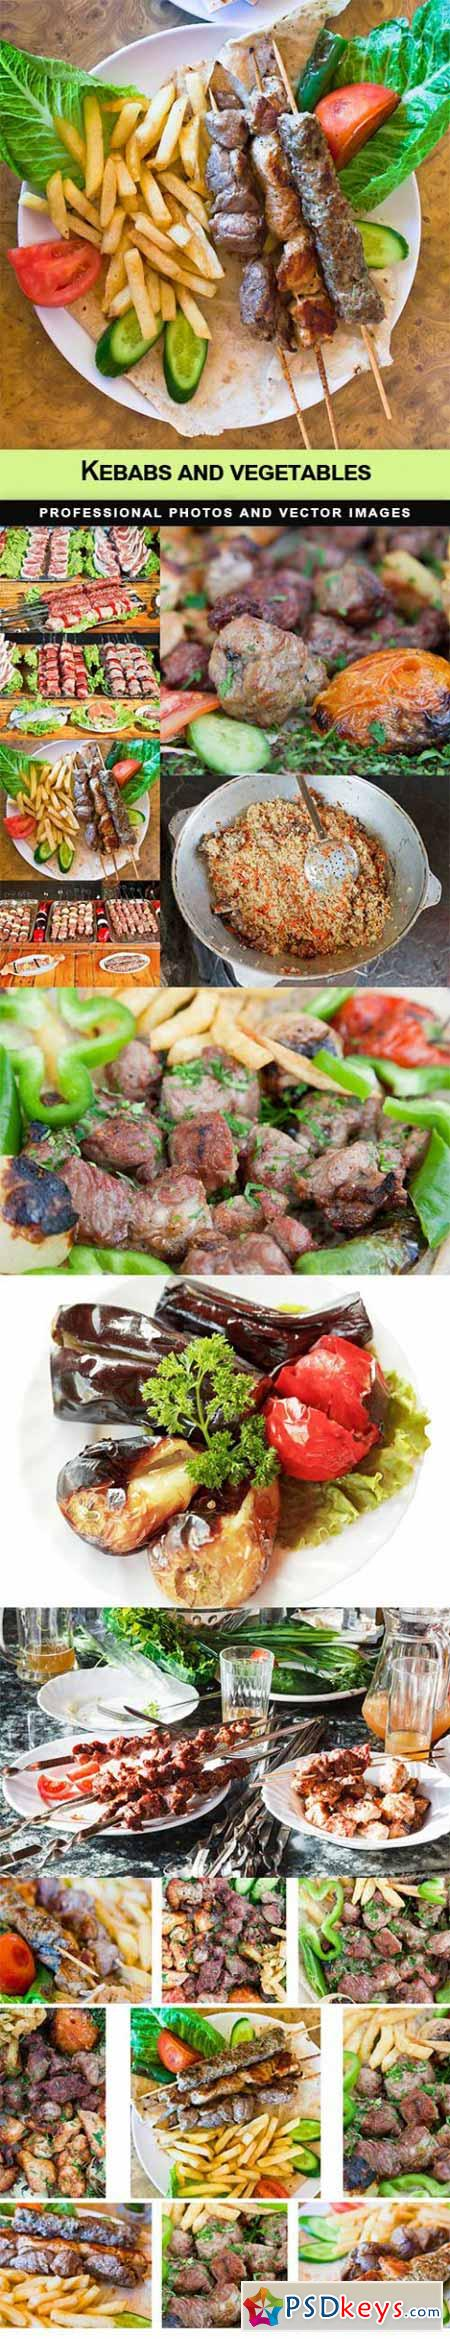 Kebabs and vegetables - 10 UHQ JPEG